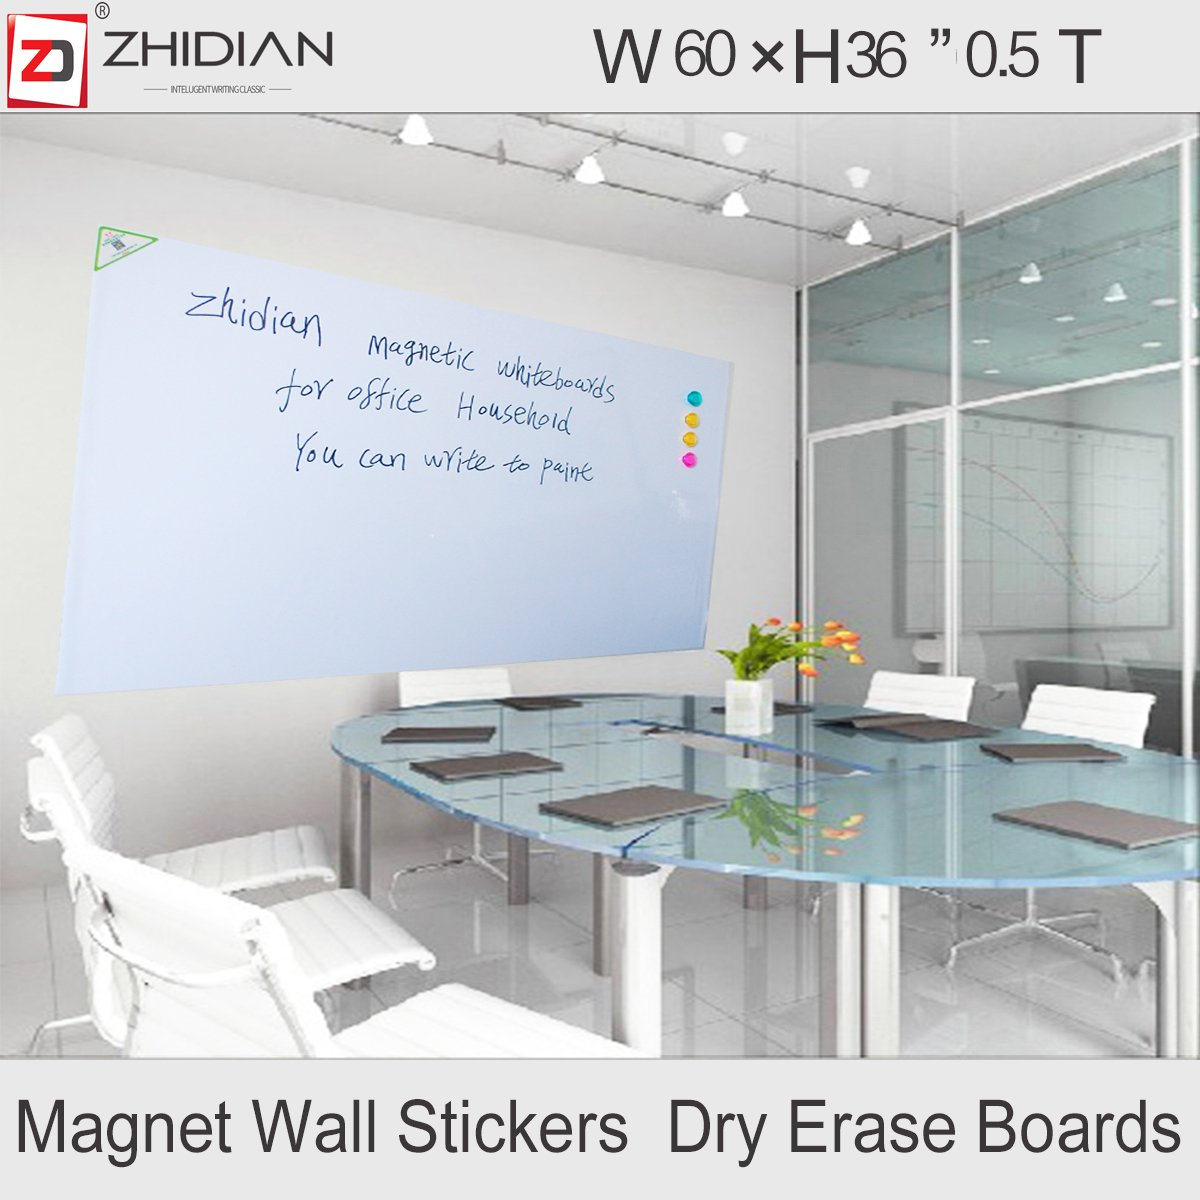 ZHIDIAN Magnetic white board stickers for wall/large dry erase board 60 X 36 Inches/markers and eraser/Magnets